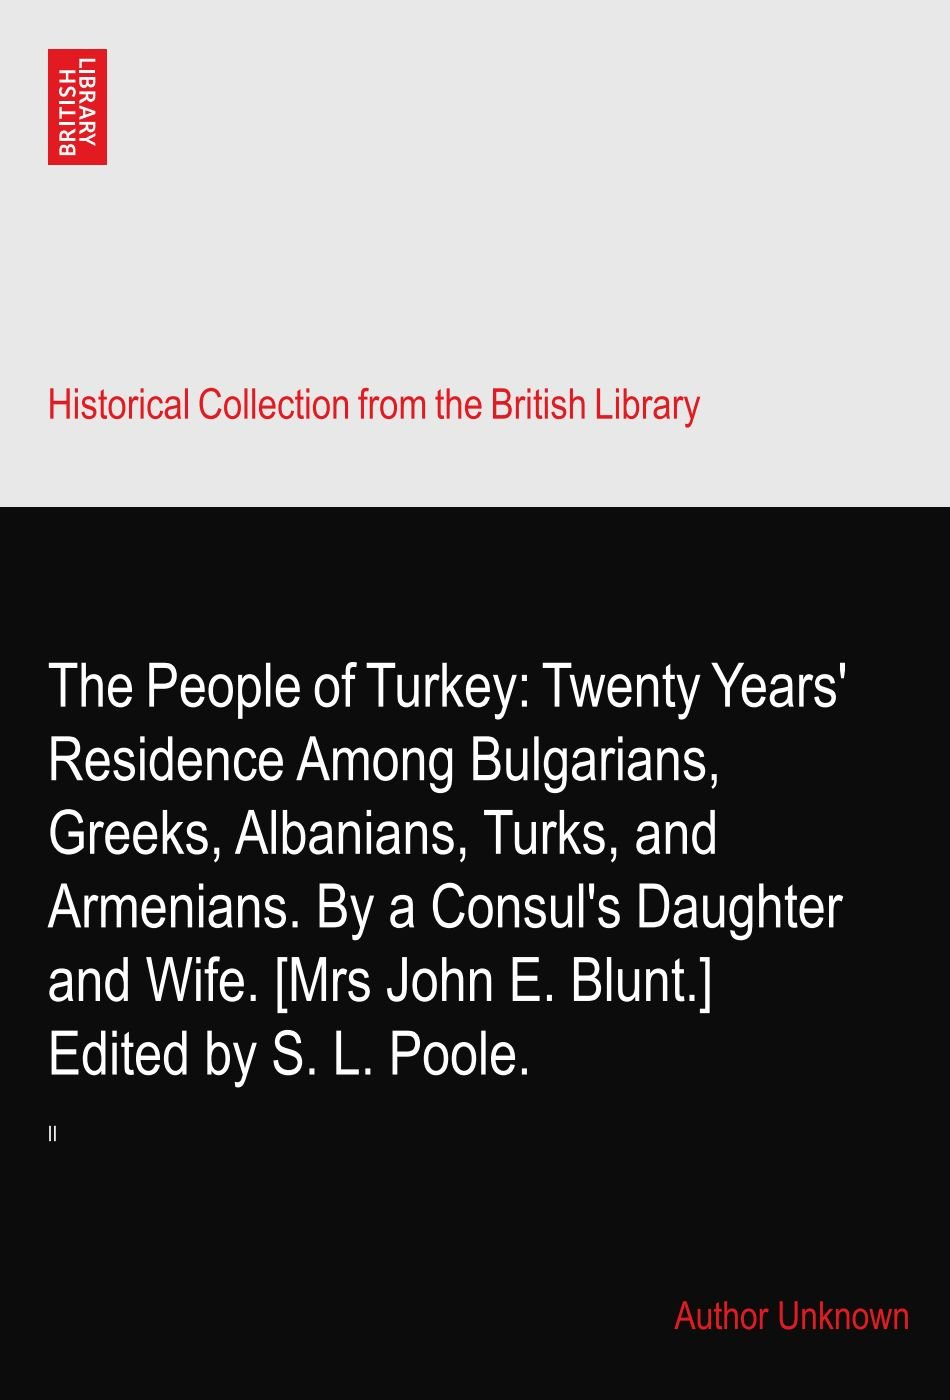 The People of Turkey: Twenty Years' Residence Among Bulgarians, Greeks, Albanians, Turks, and Armenians. By a Consul's Daughter and Wife. [Mrs John E. Blunt.] Edited by S. L. Poole.: II ebook